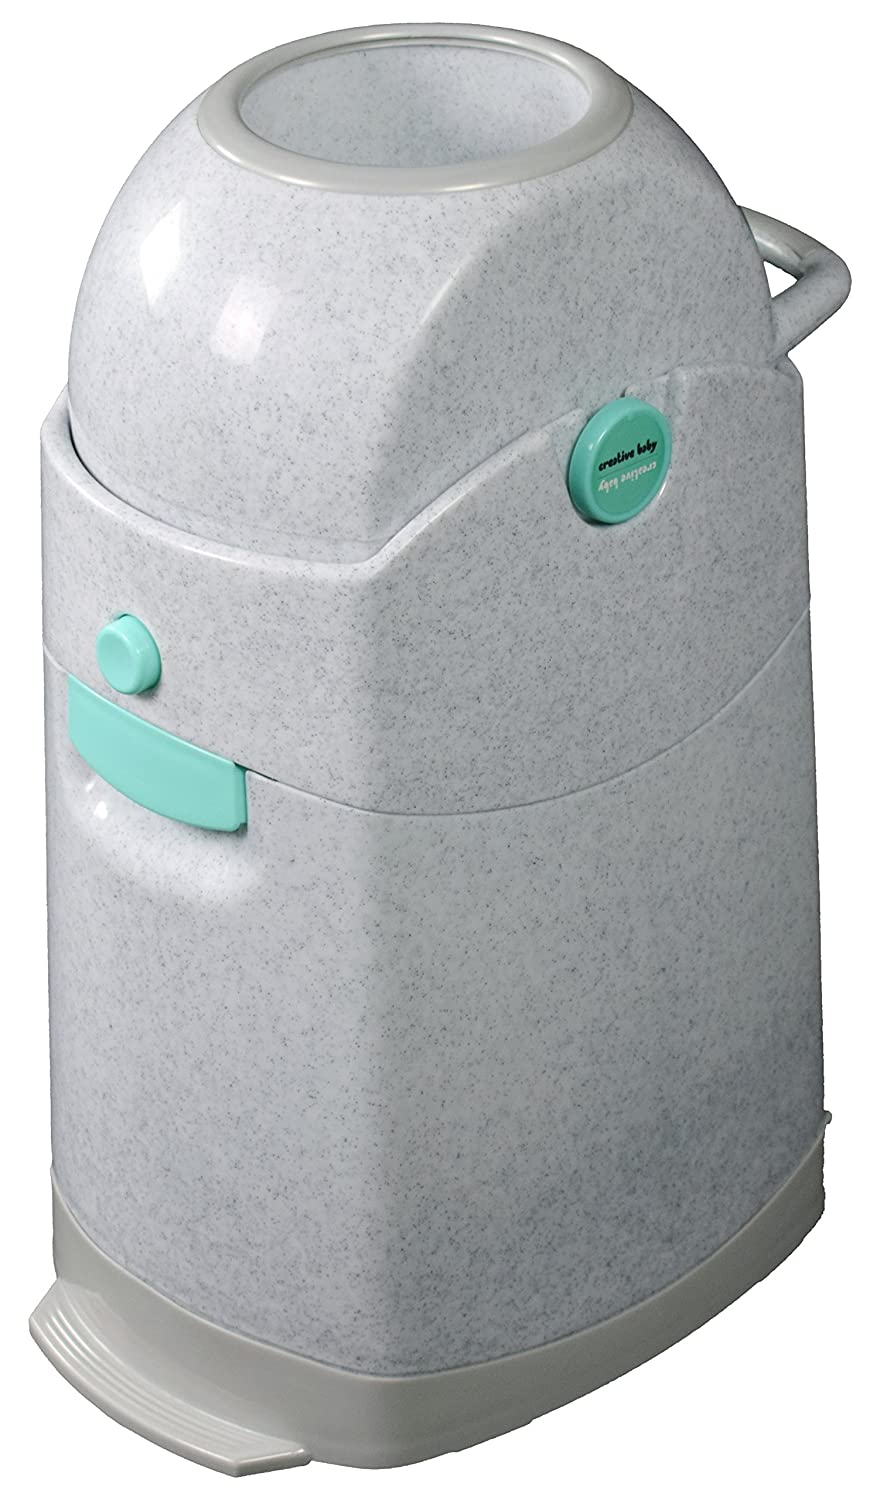 Creative Baby Tidy Diaper Pail, Marble, Marble/Blue/Gray, One Size CSDDP-002